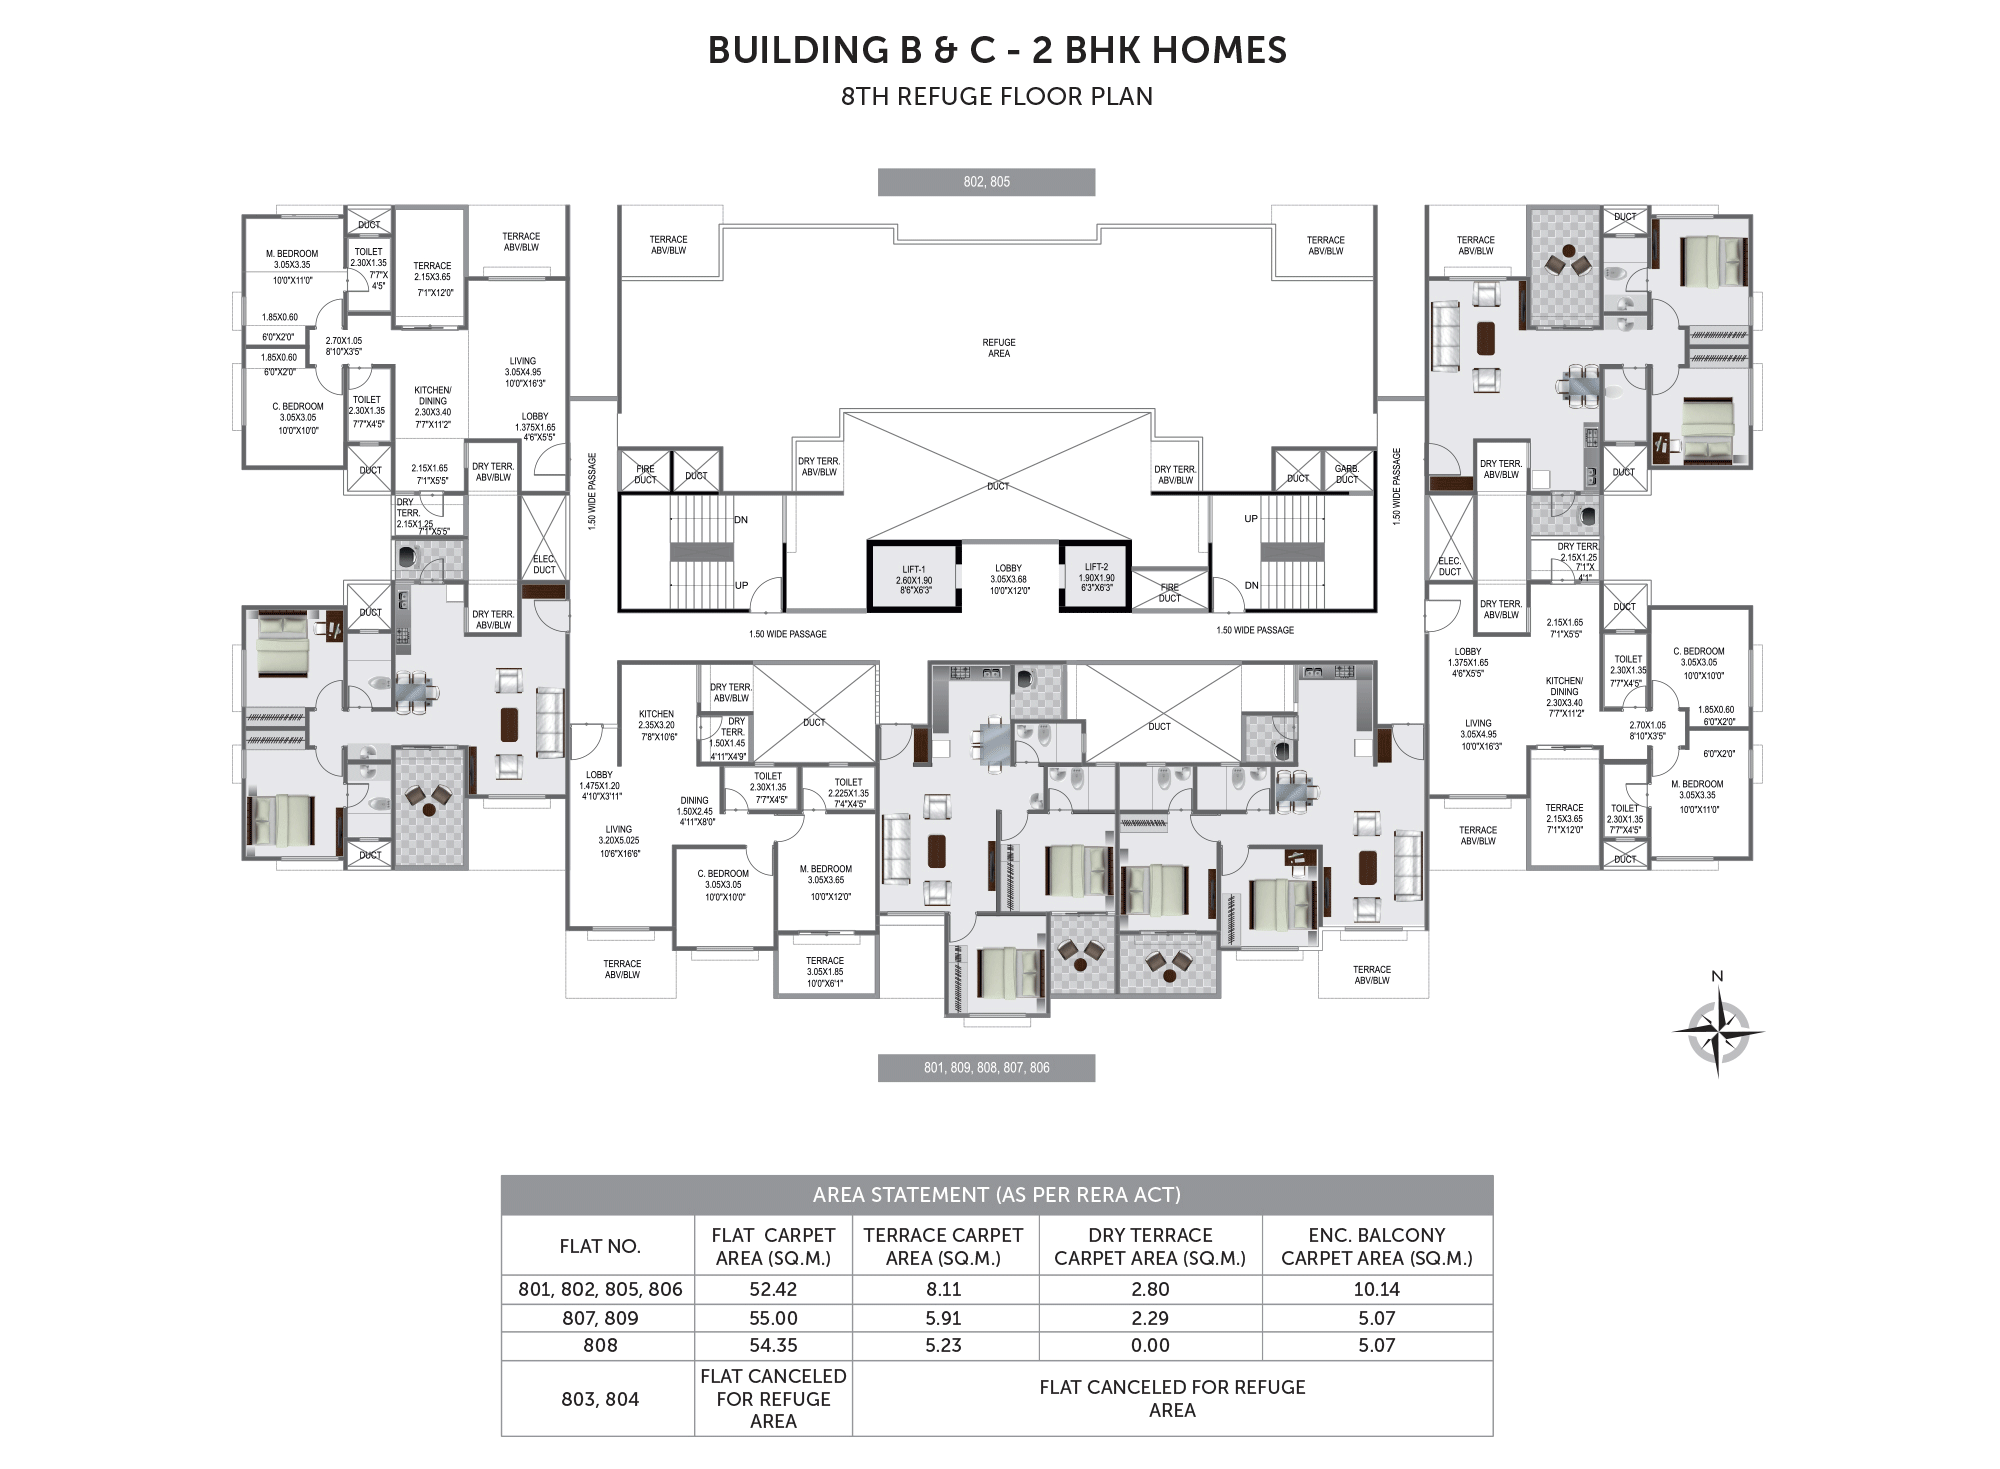 Pristine Prolife 3_Building B & C - 8TH REFUGE FLOOR PLAN